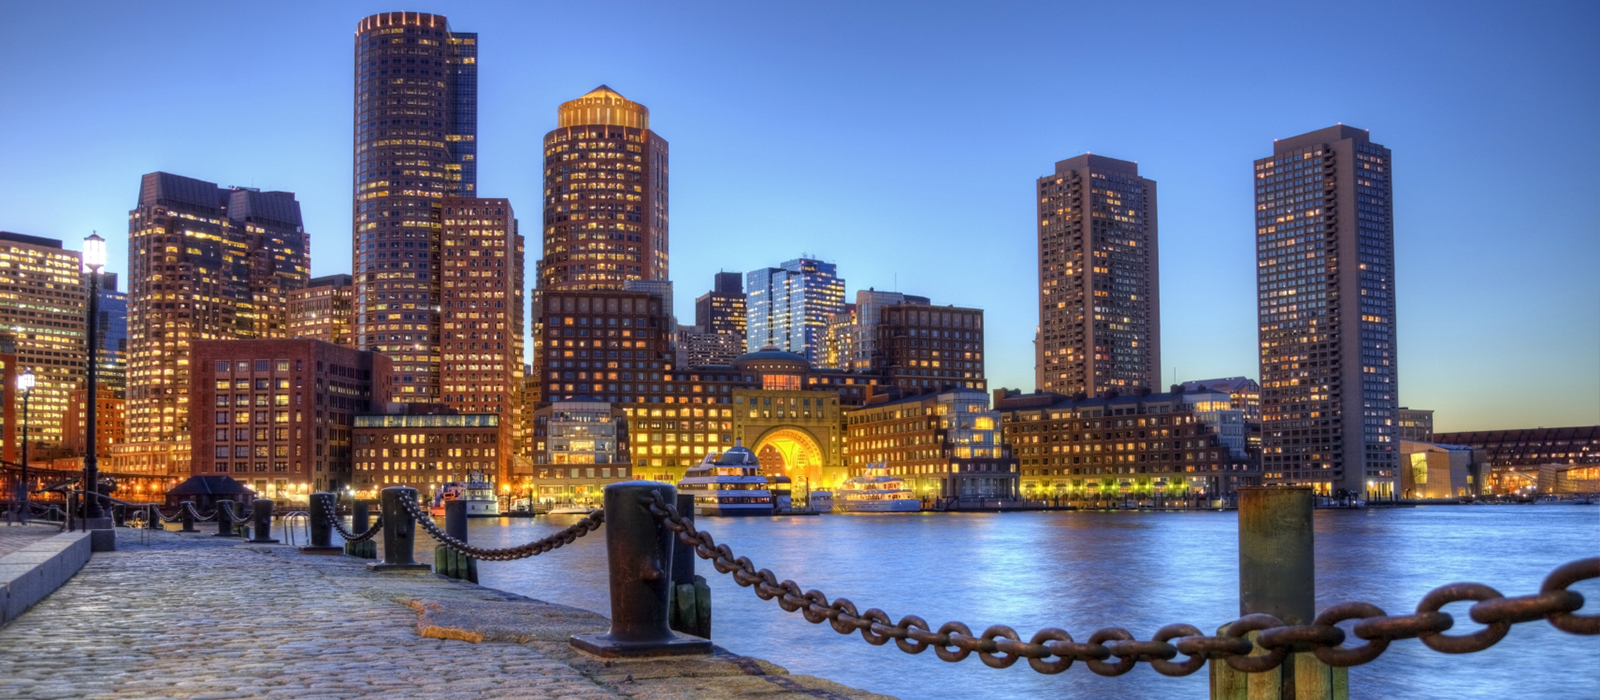 View of the Boston skyline